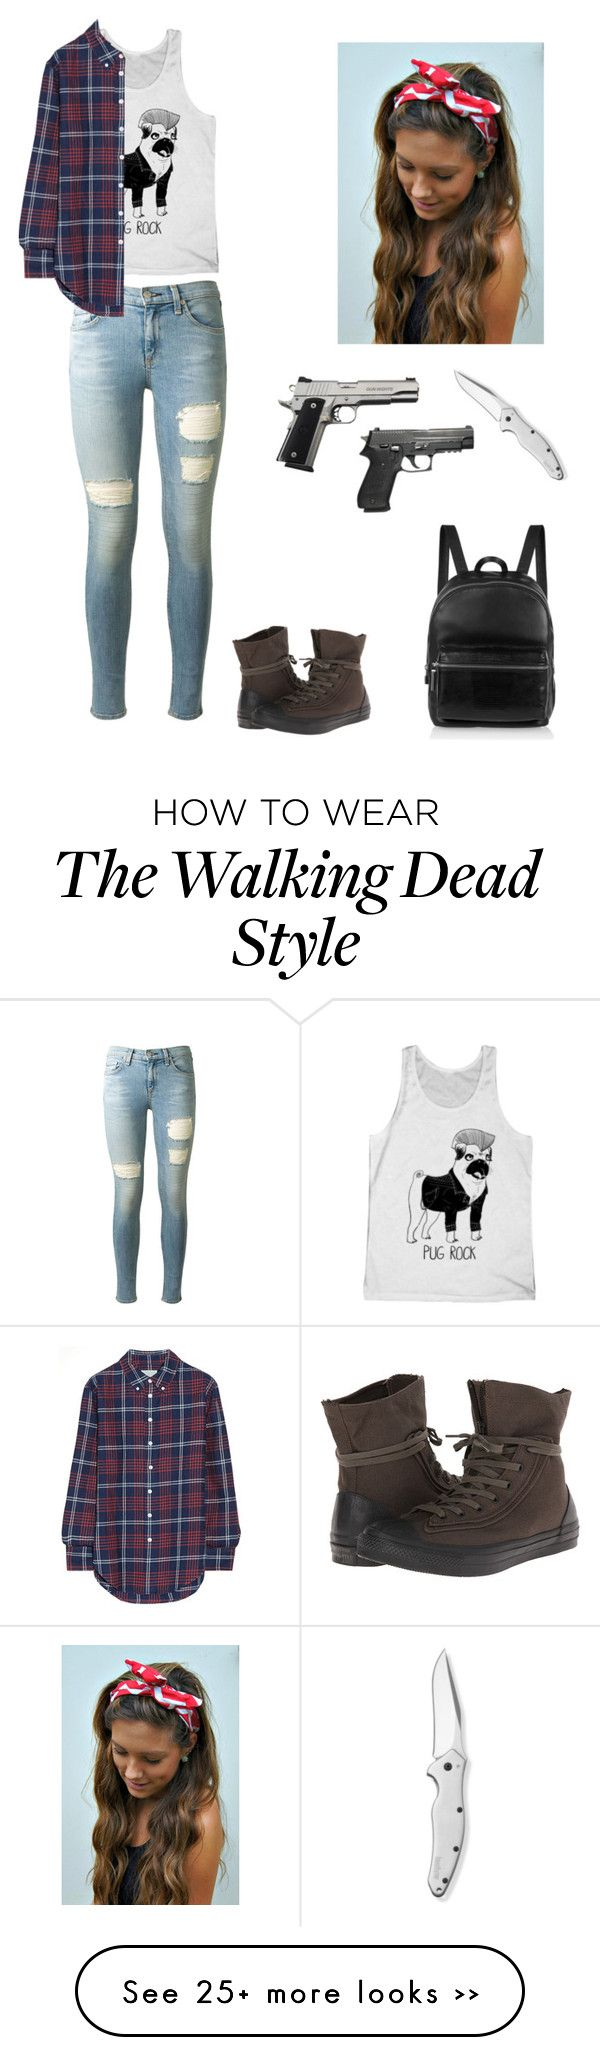 """""""If I were in the walking dead"""" by im-to-fab-for-this-gurl on Polyvore"""